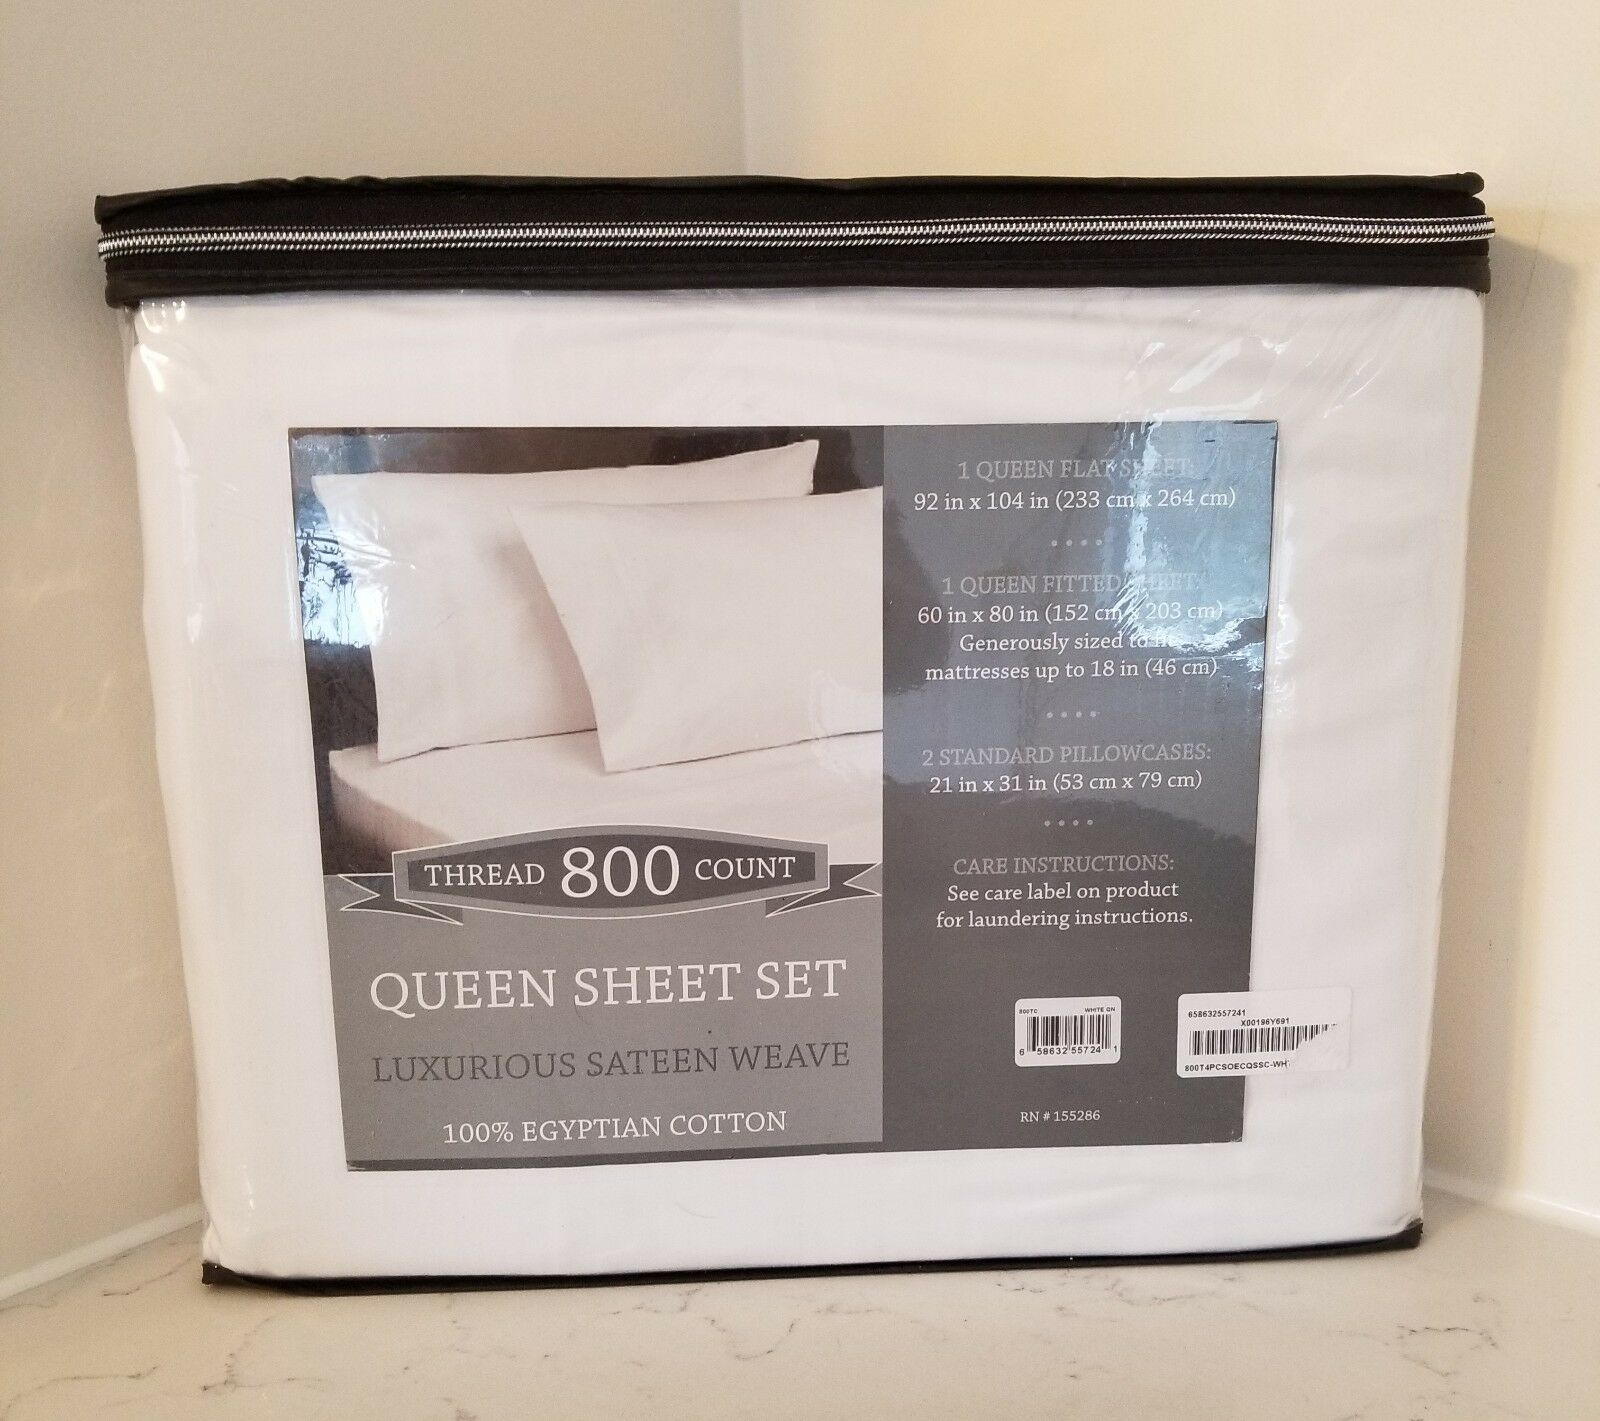 100% Egyptian Cotton Queen Sheet Set Luxurious Sateen Weave 800 Thread Count Wht